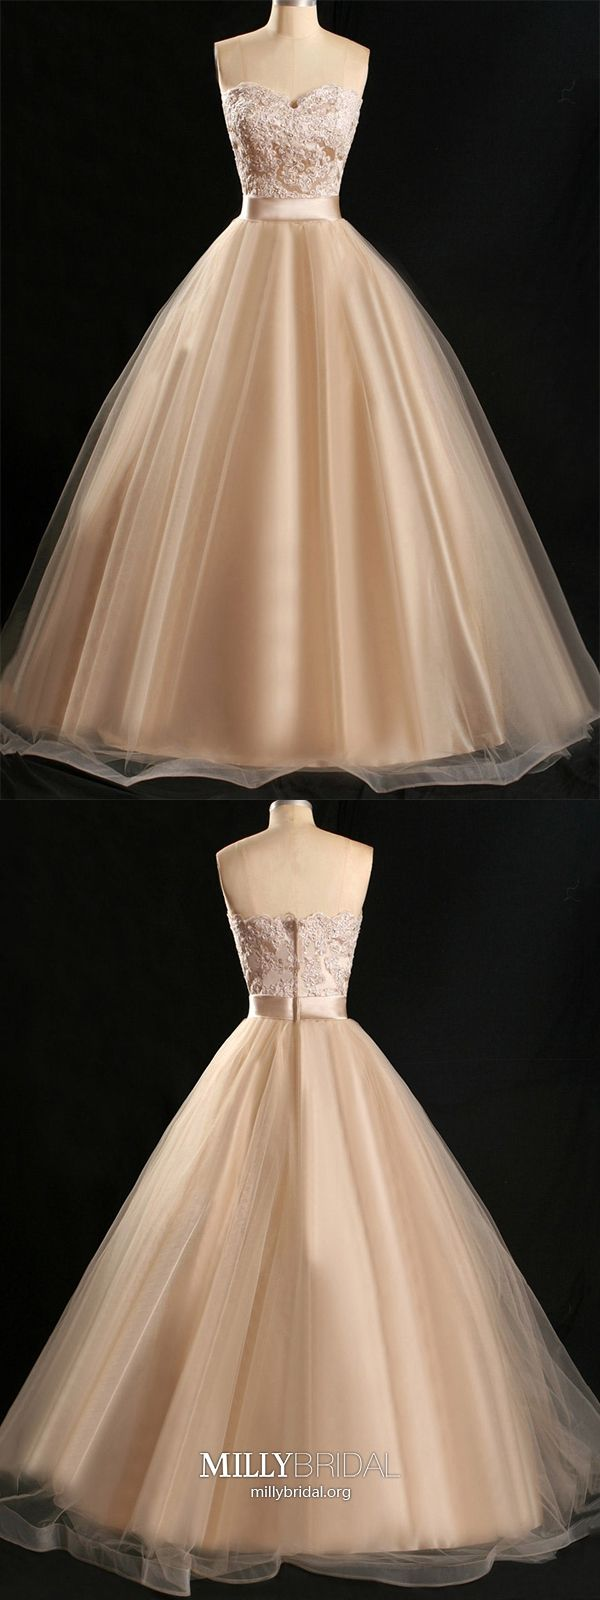 Long prom dresses gold strapless formal evening dresses ball gown